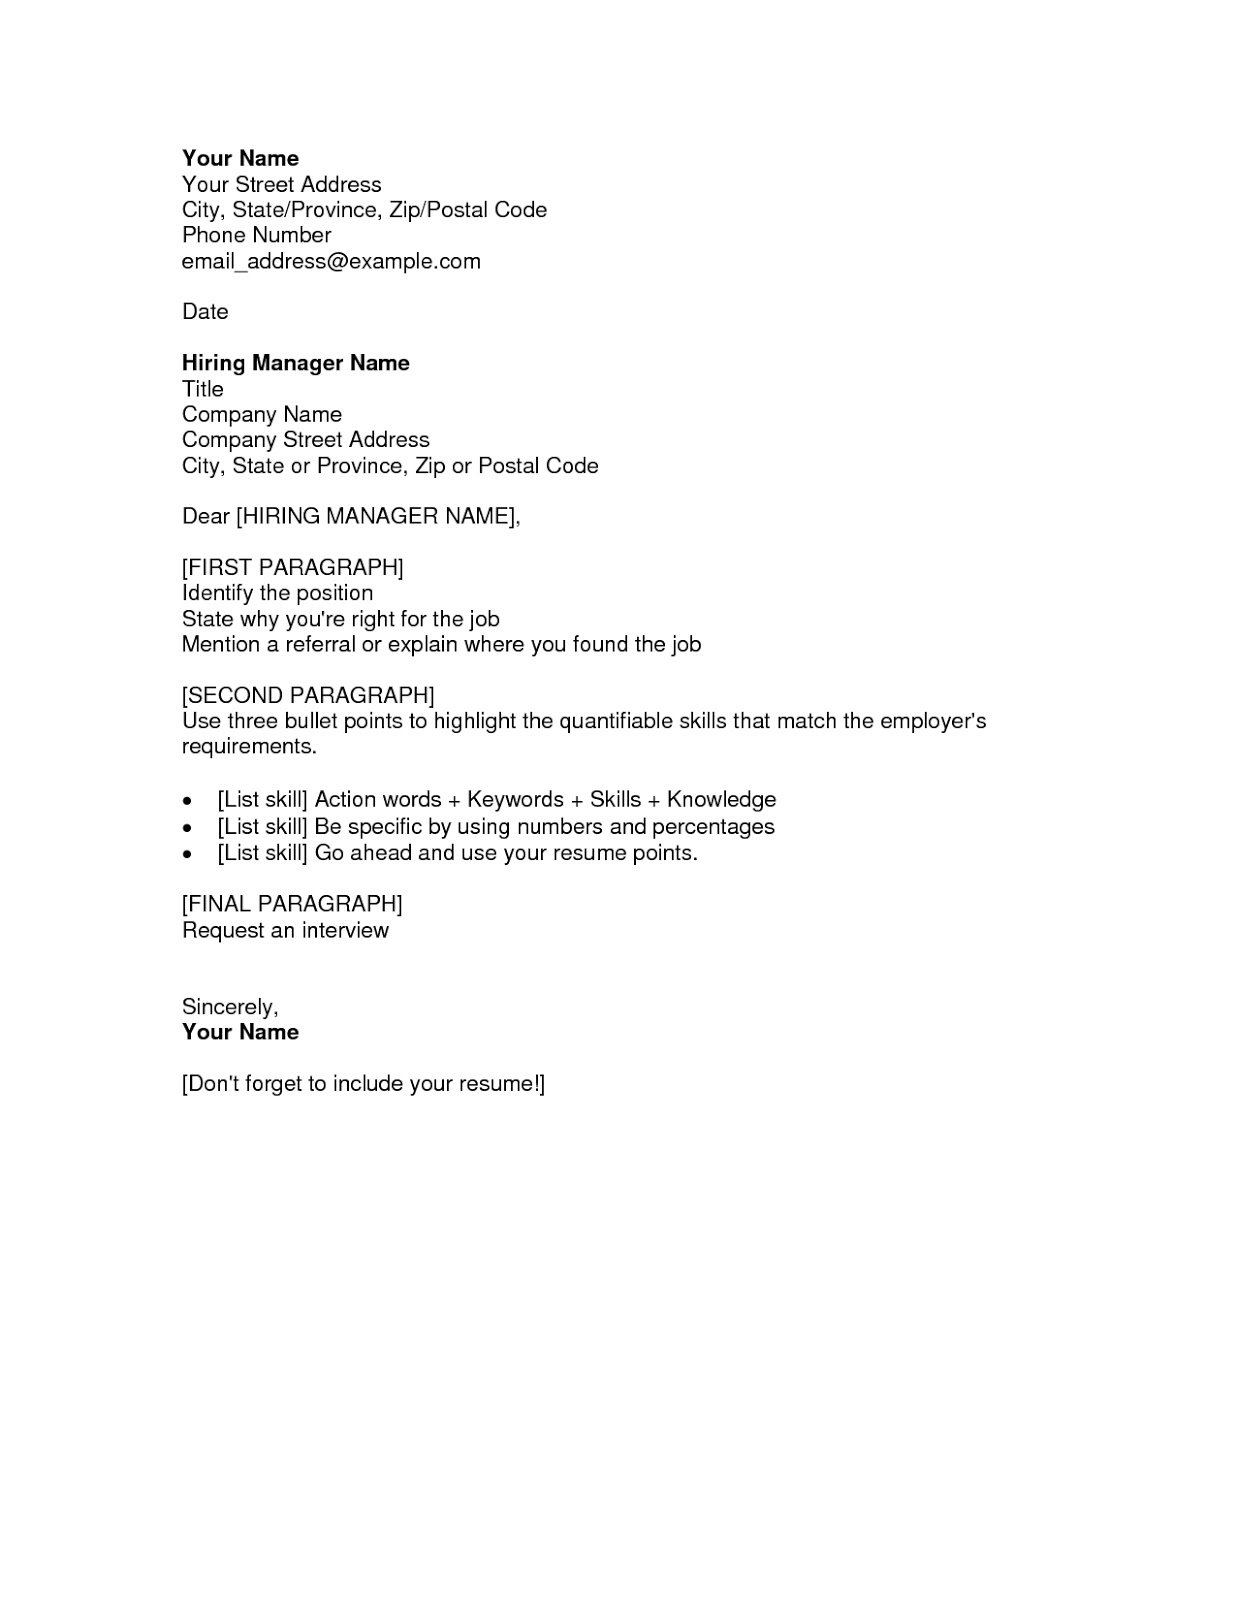 job resume cover letter free cover letter samples for resumes sample resumes resume format resume cover letter job - Free Sample Of Cover Letter For Job Application